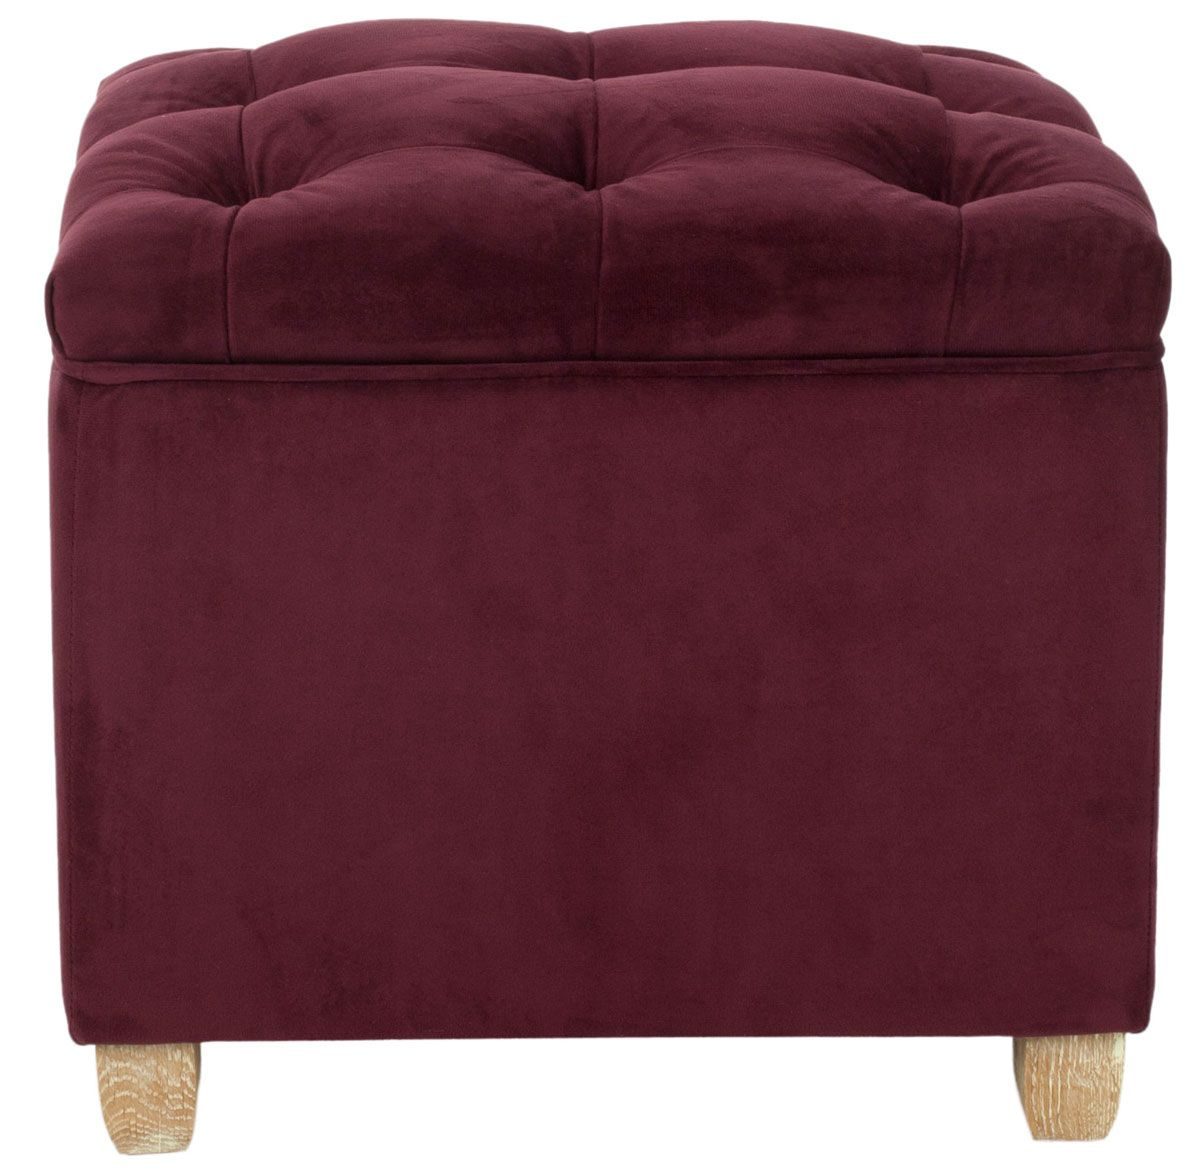 All Occasions Event Rental Burgundy Tufted Ottoman Storage Ottoman Ottoman Tufted Ottoman [ 1171 x 1200 Pixel ]